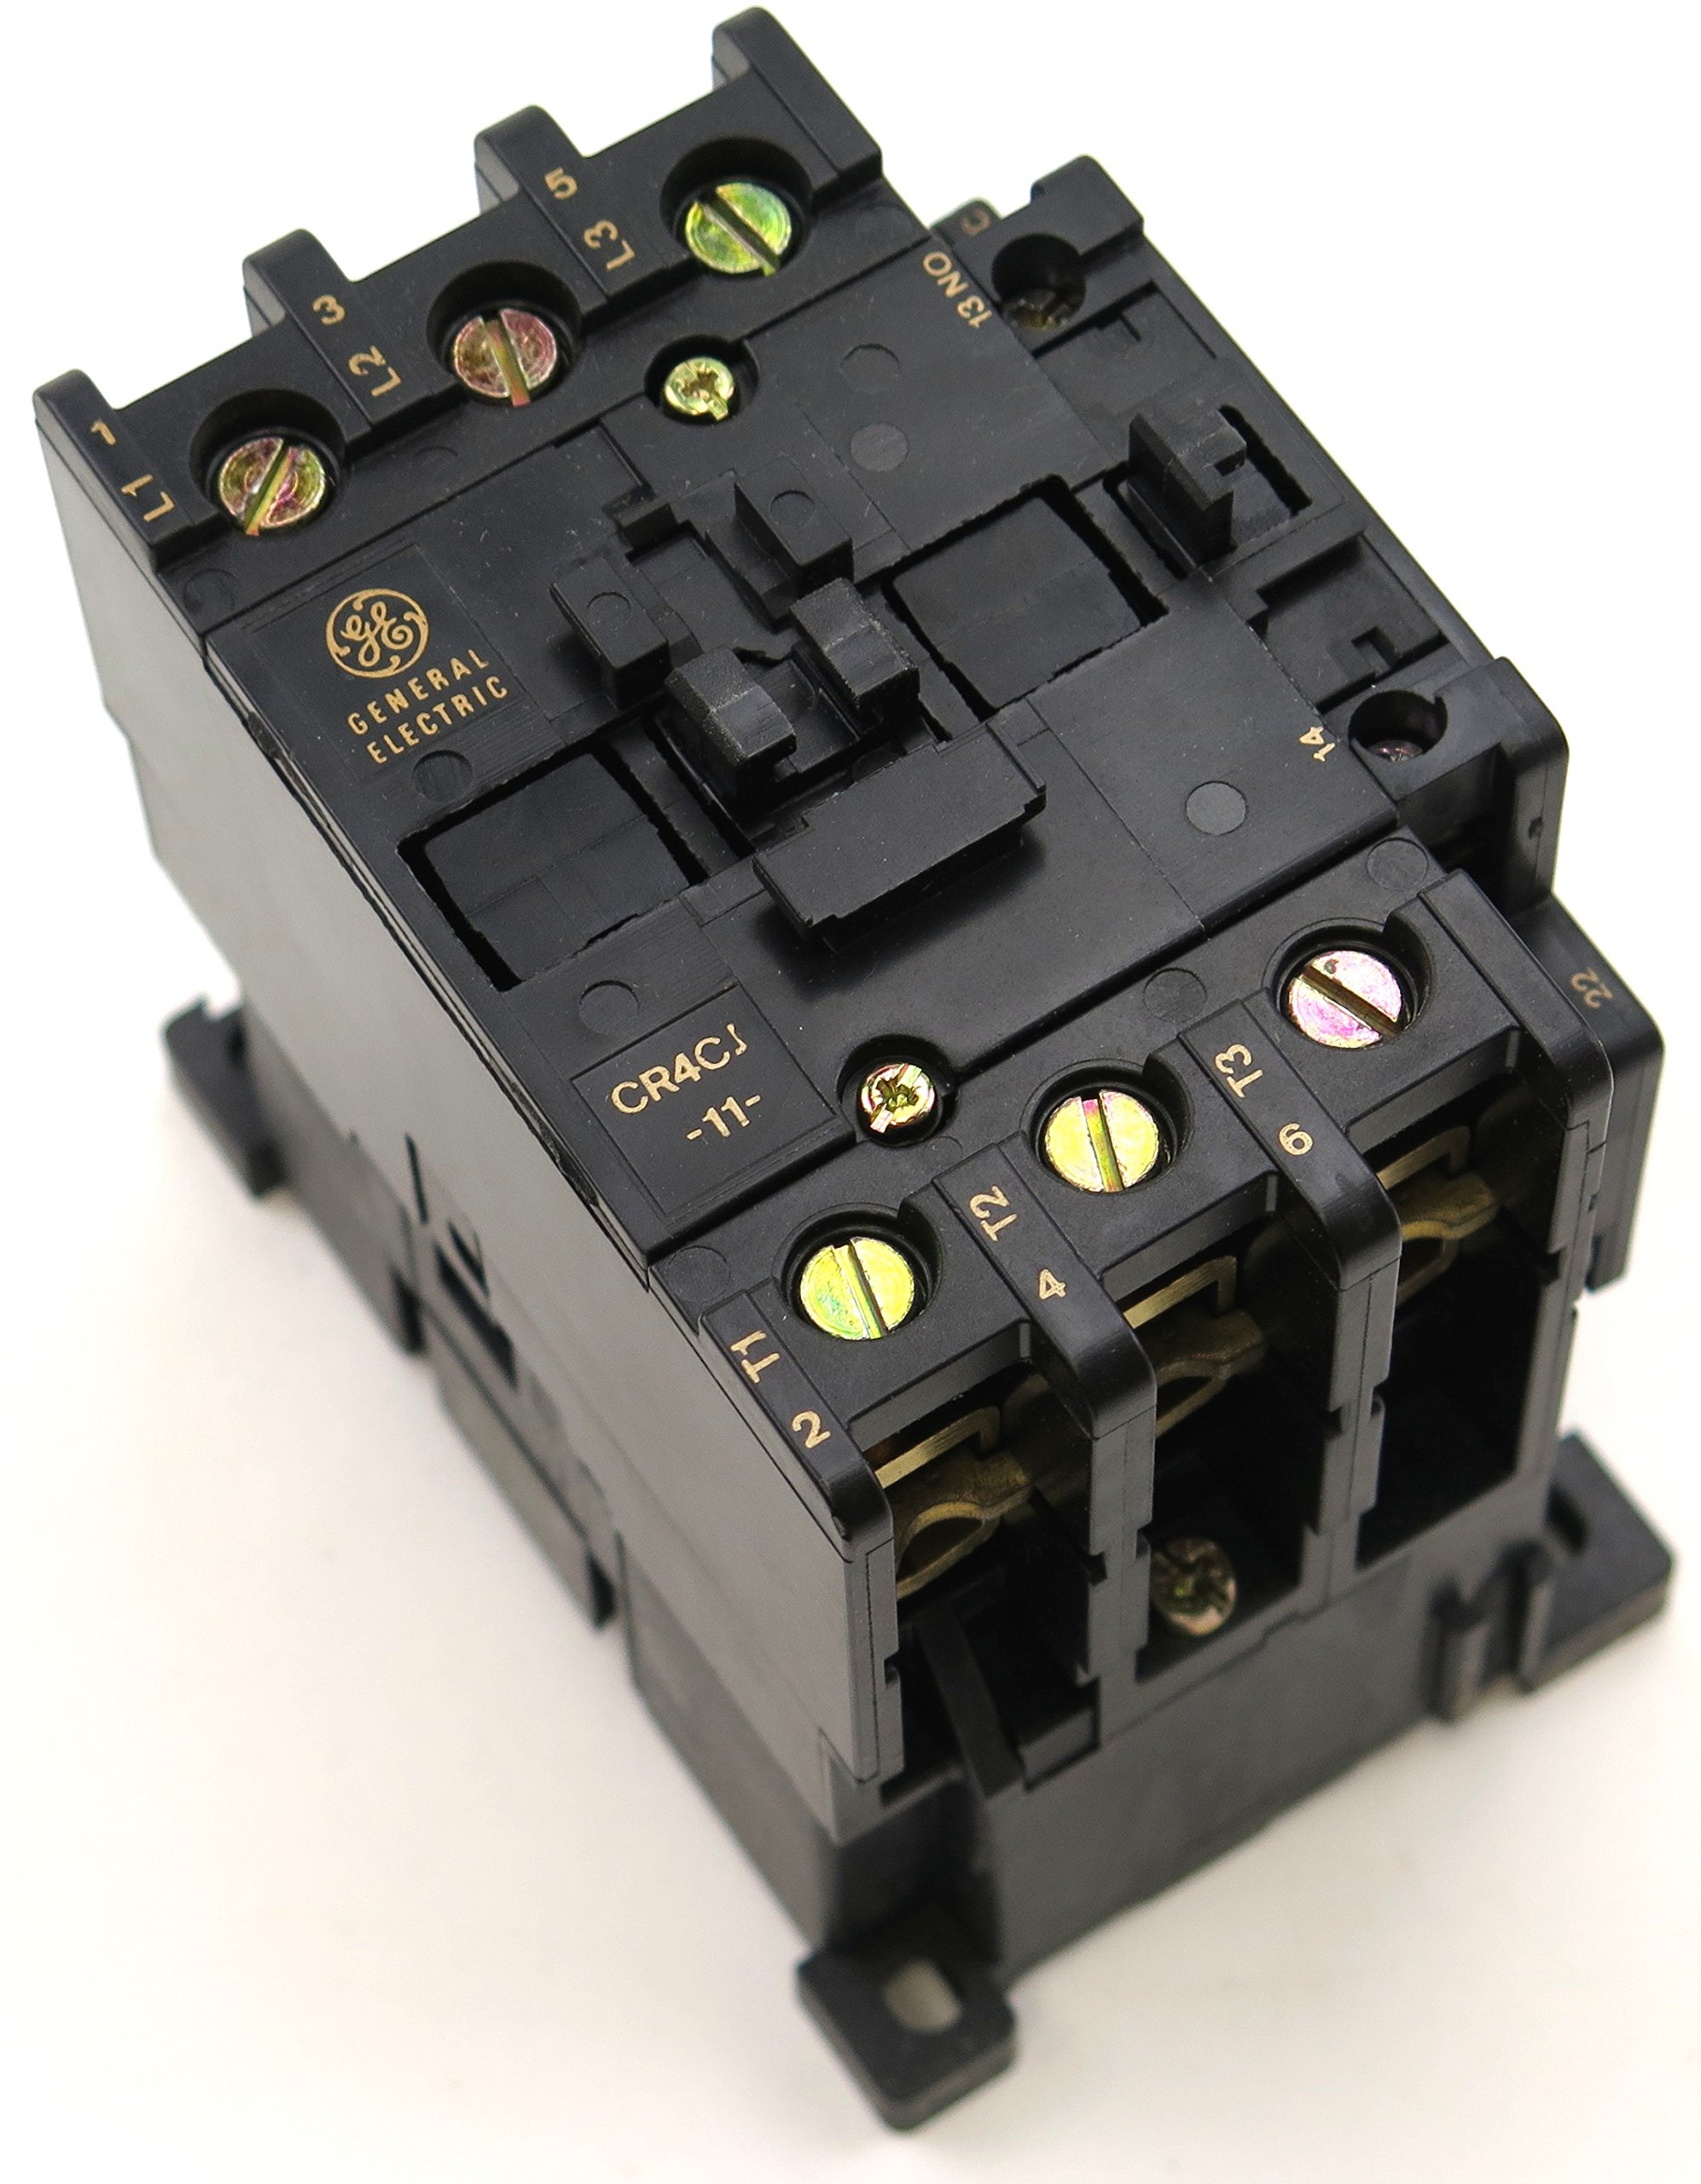 GE CR4CJB MAGNETIC CONTACTOR 56A 50HP 220/4240V 50/60HZ AC COIL FITS SPRECHER SCHUH CA3-60-220-NO by GE (Image #1)